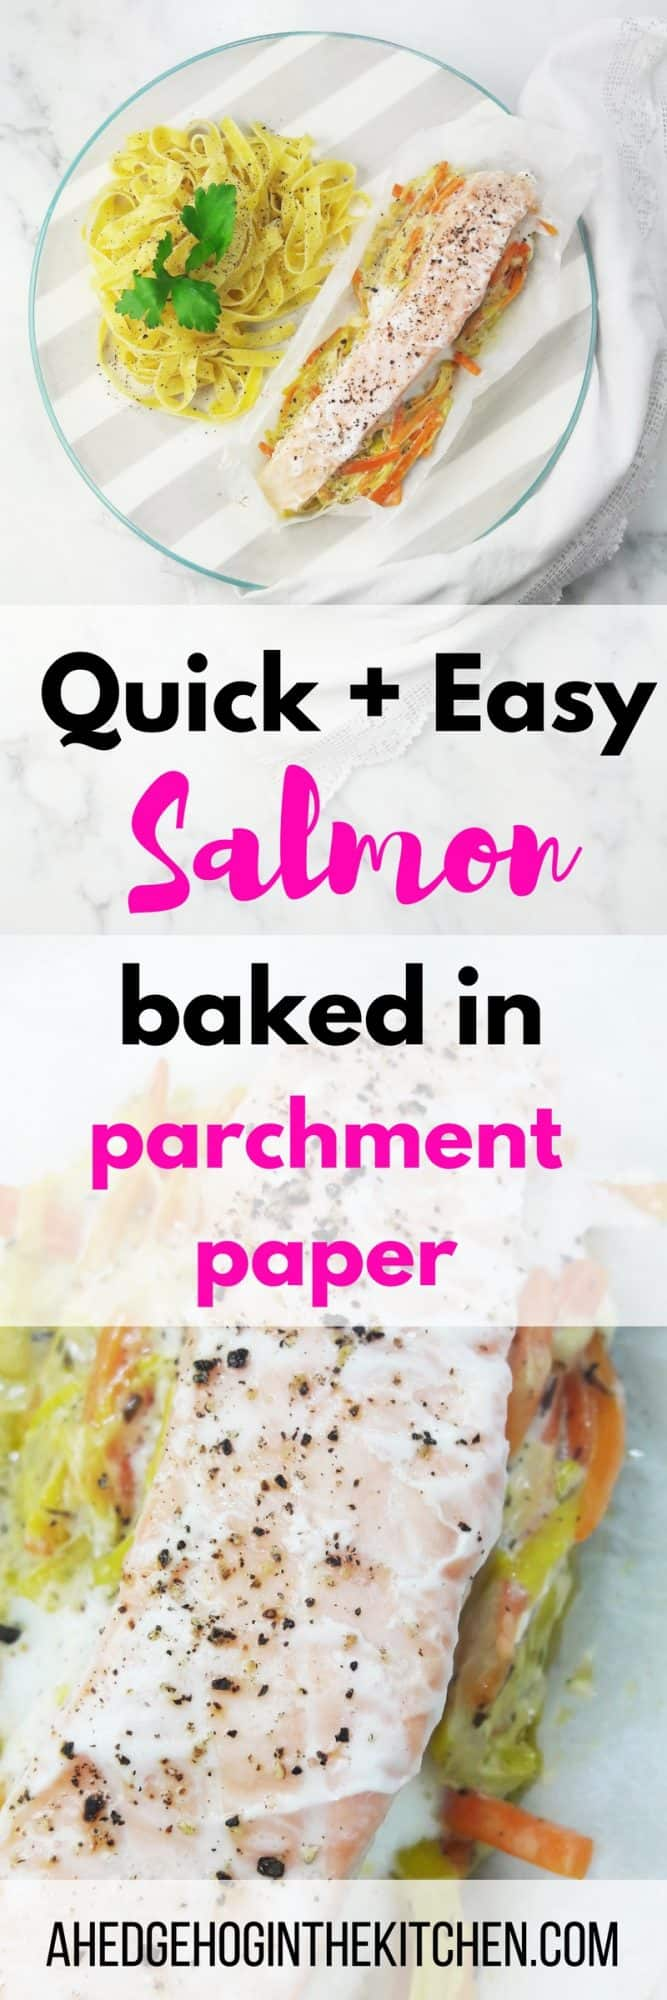 You'll love this quick and easy salmon baked in parchment paper!